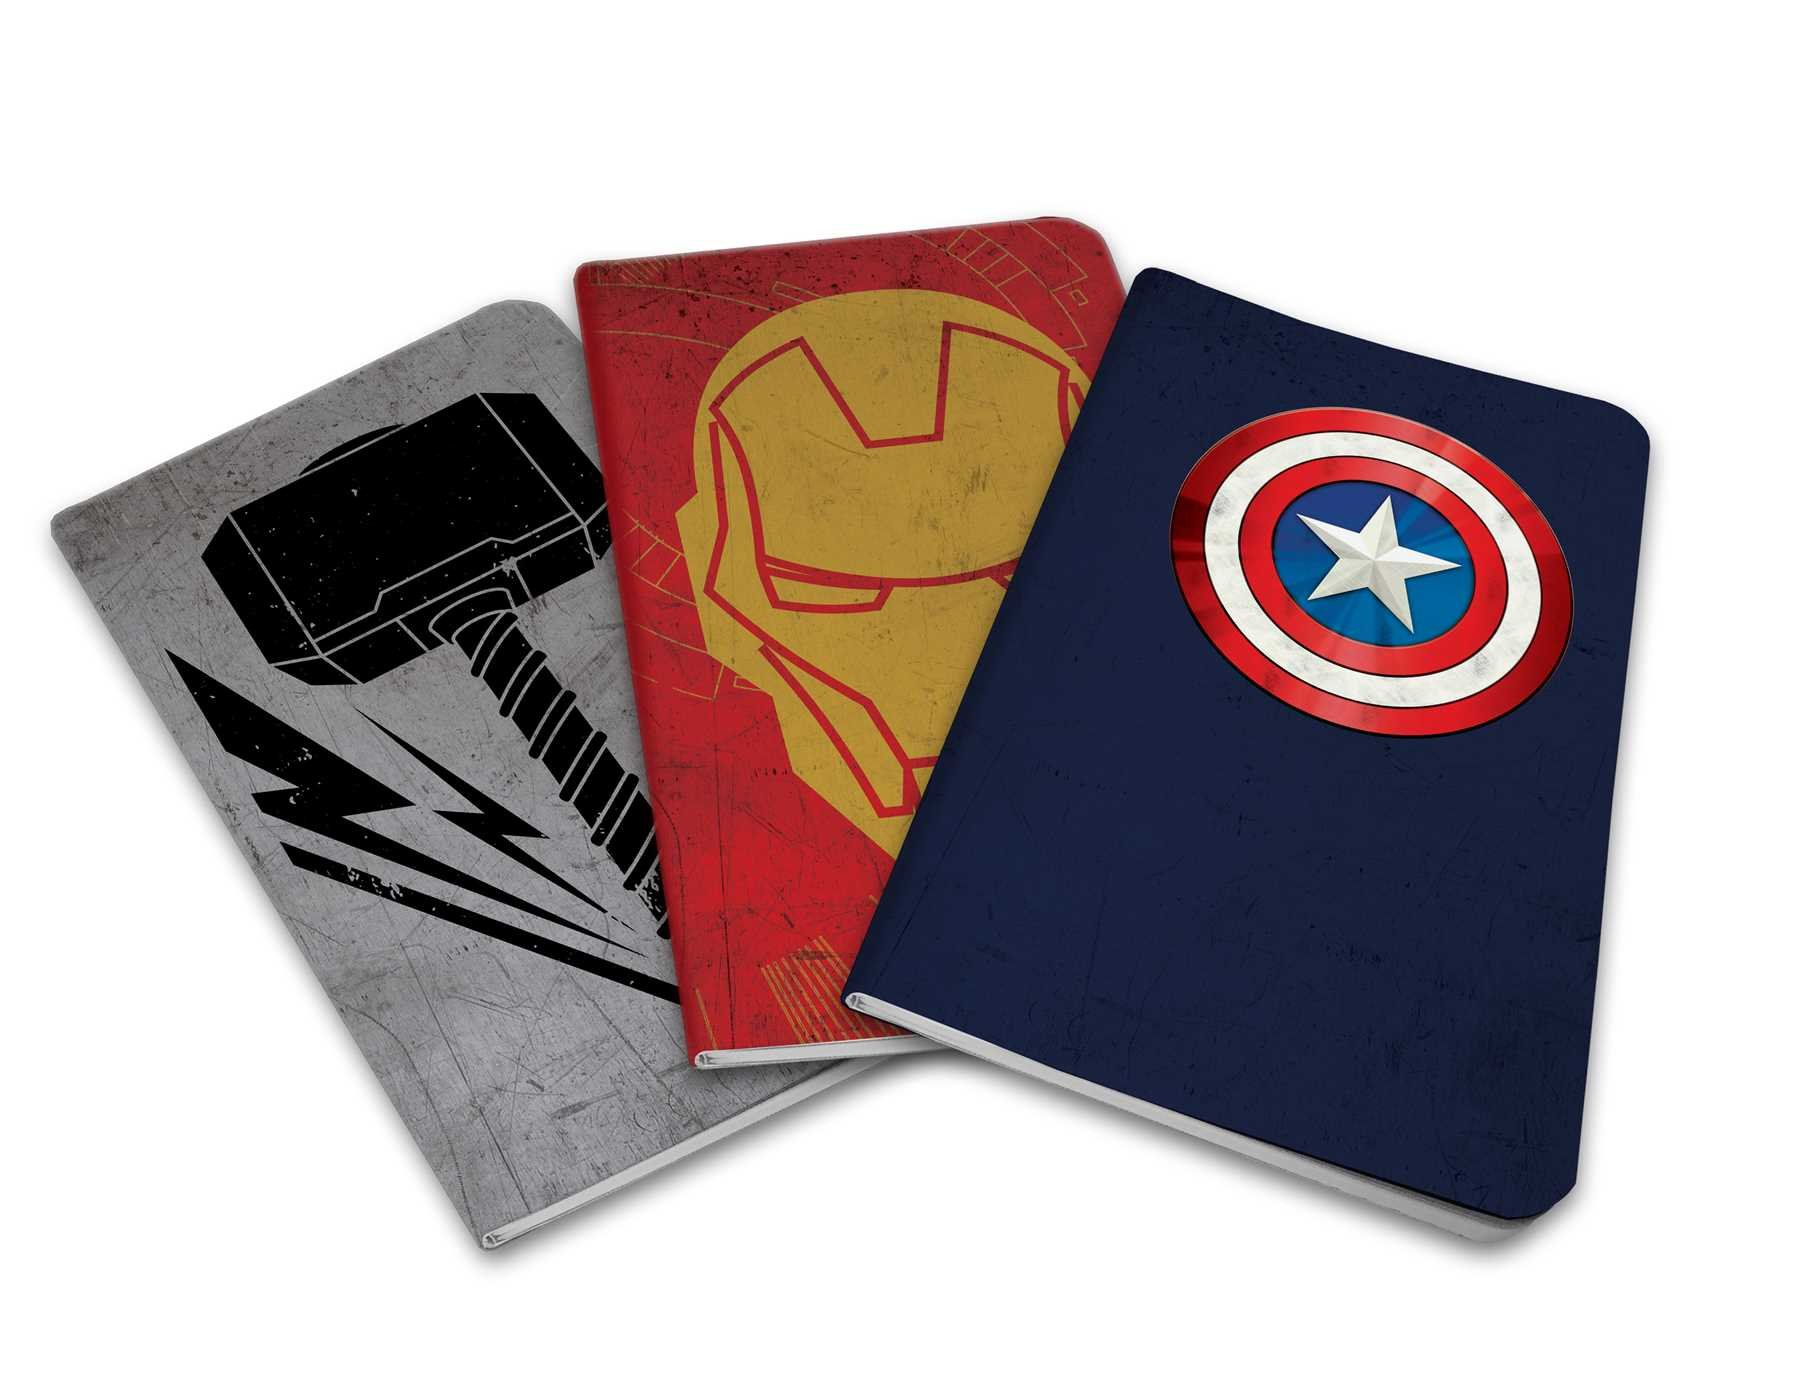 Marvel Avengers Notebook, Avengers, Infinity War, Marvel Universe, MCU, Iron Man, Thor, Thanos, cosplay gear, action figures, Marvel items, Hulk, Spider Man, Captain America, Black Widow, Doctor Strange,